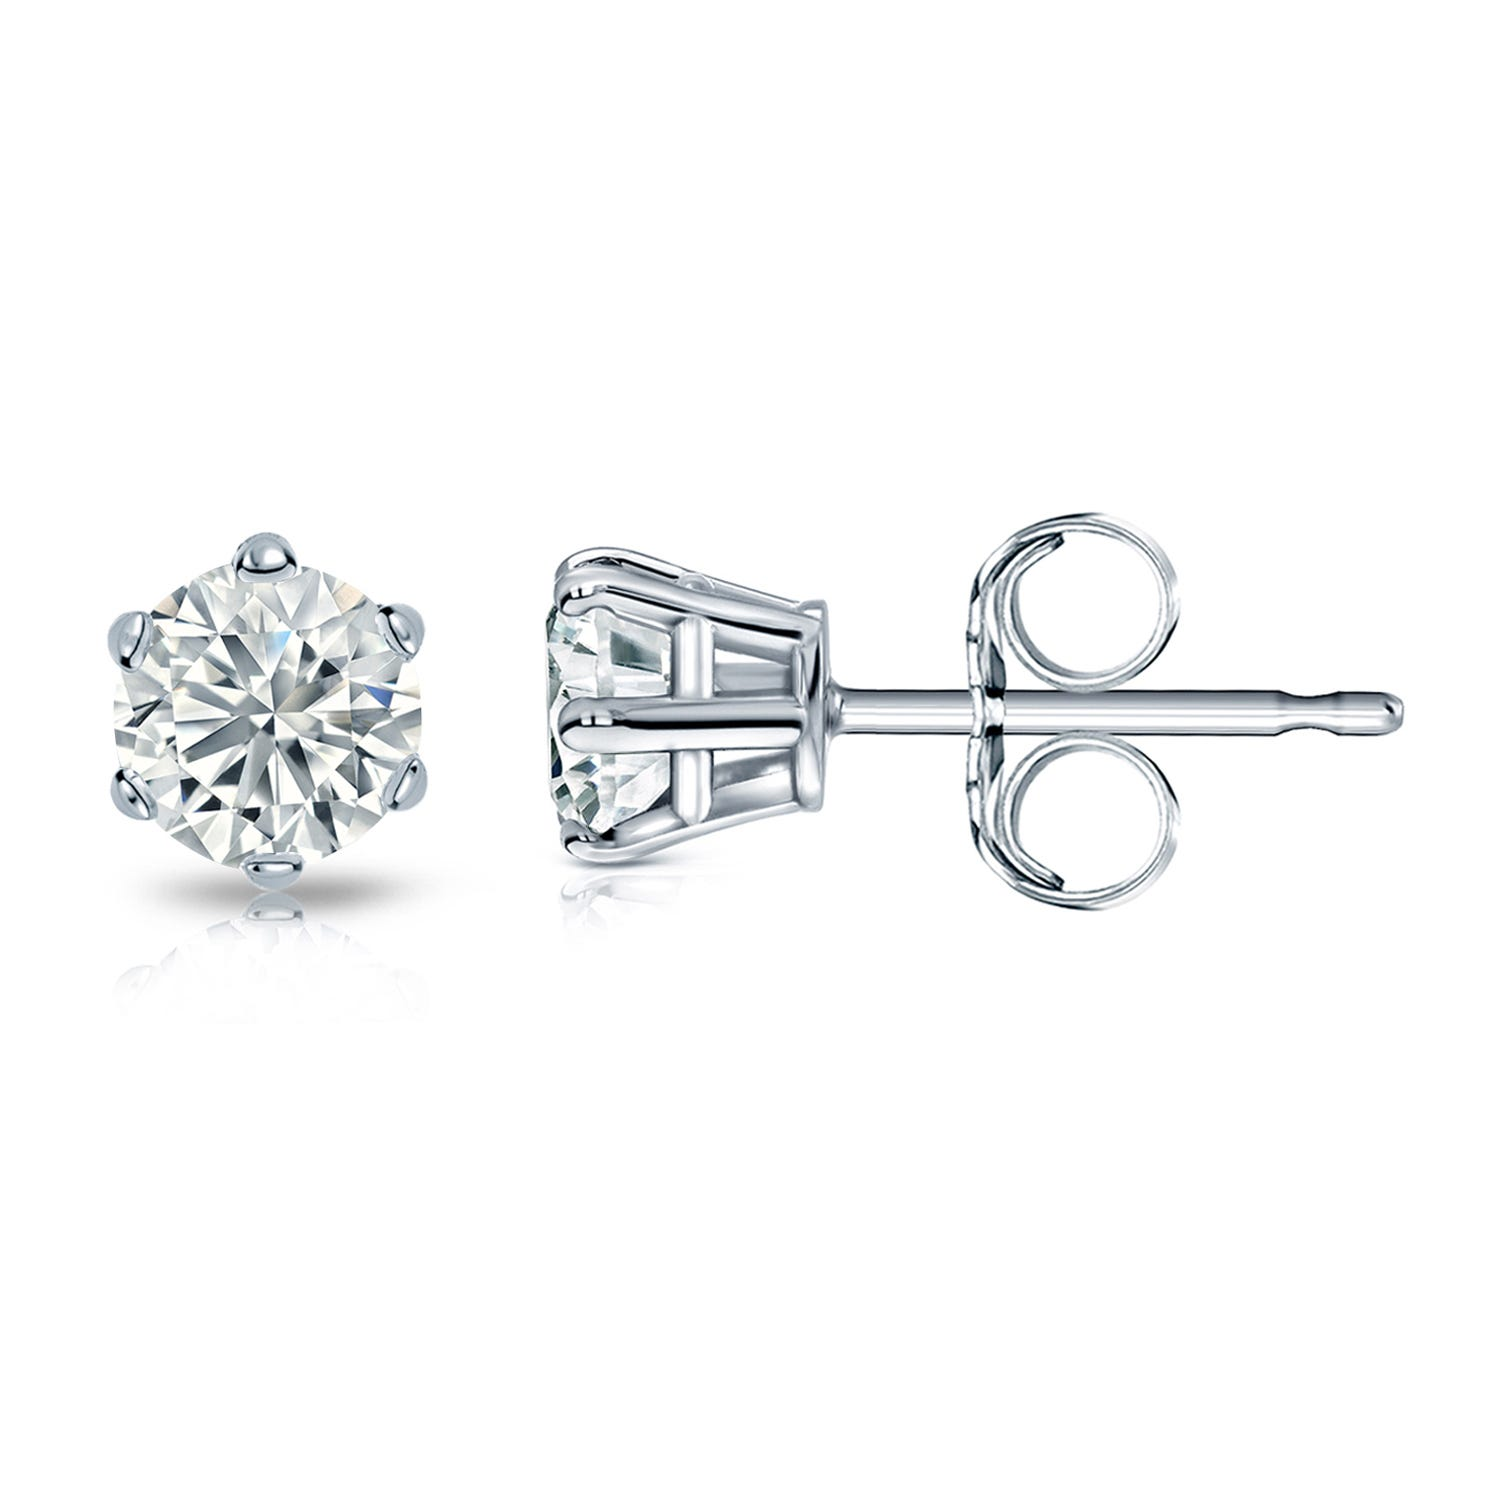 Round Diamond 5/8ctw. (IJ-I2) Solitaire Stud 6-Prong Earrings in 14K White Gold